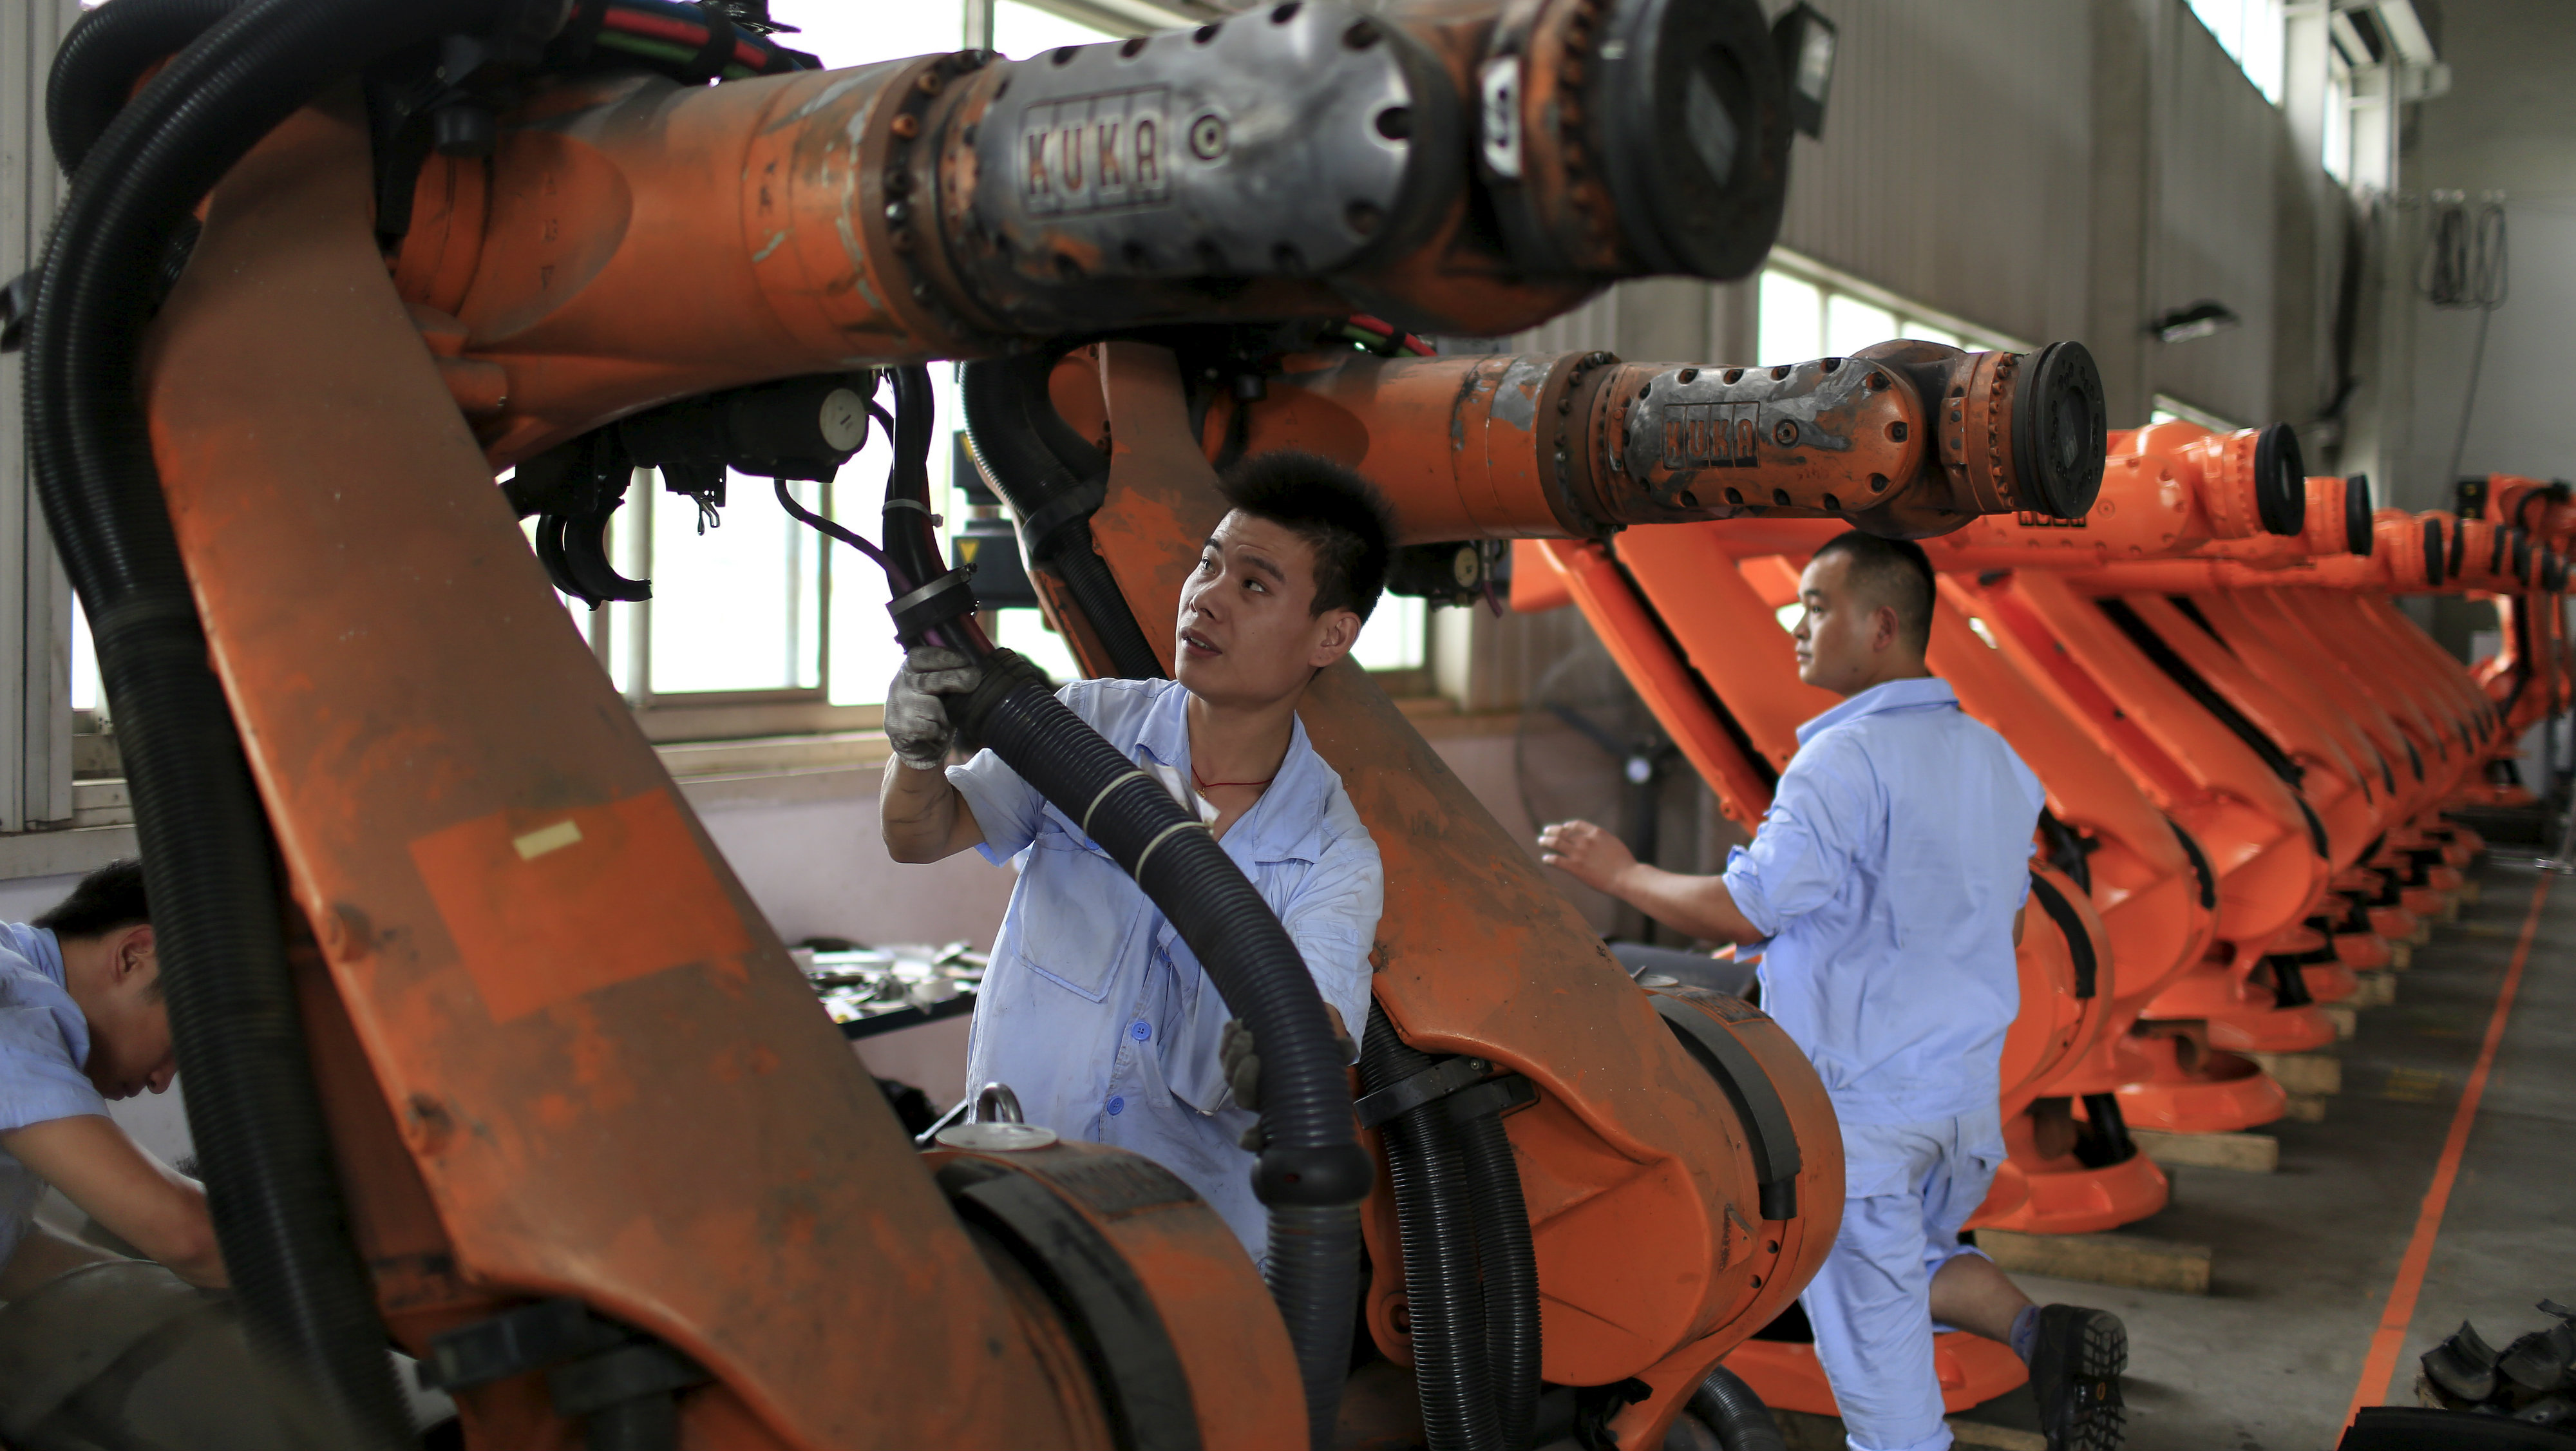 Workers fix second-hand robots in a factory in Shanghai, August 21, 2015. More than a hundred second-hand robots used to make Audi A3s at a German car factory are going through refurbishment at a Wecan Group factory in Shanghai.